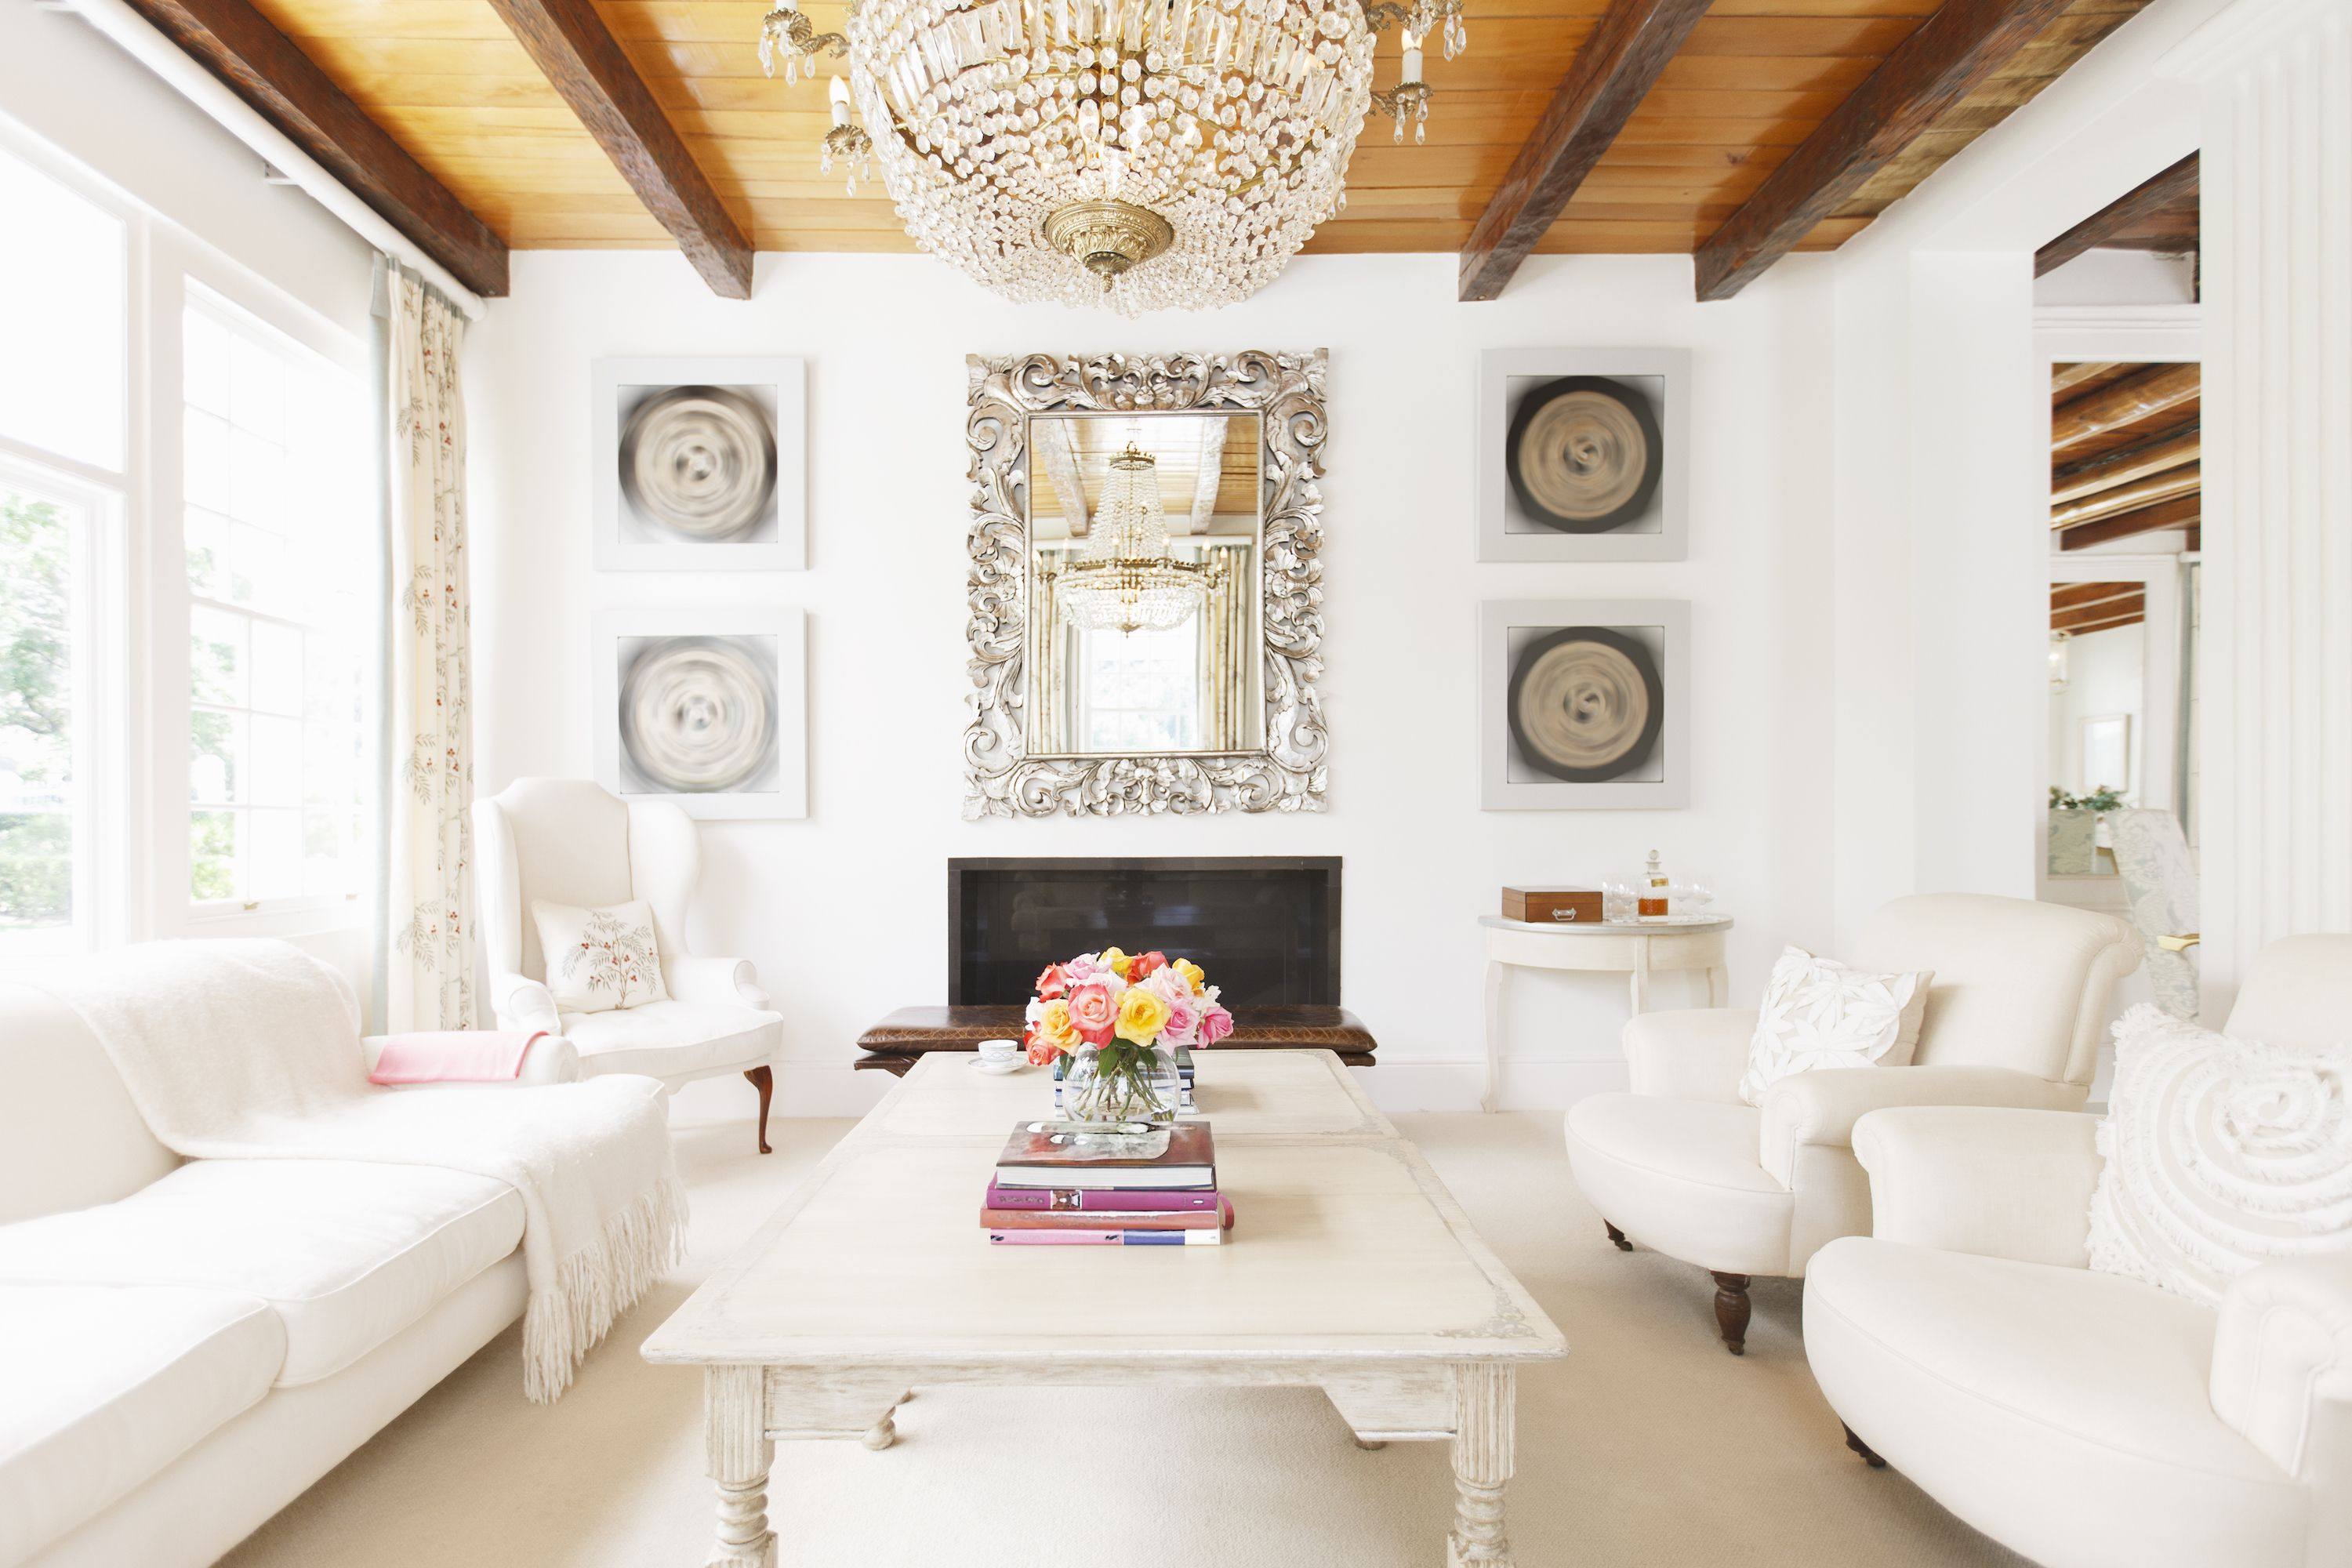 20 Interior Design Terms Defined